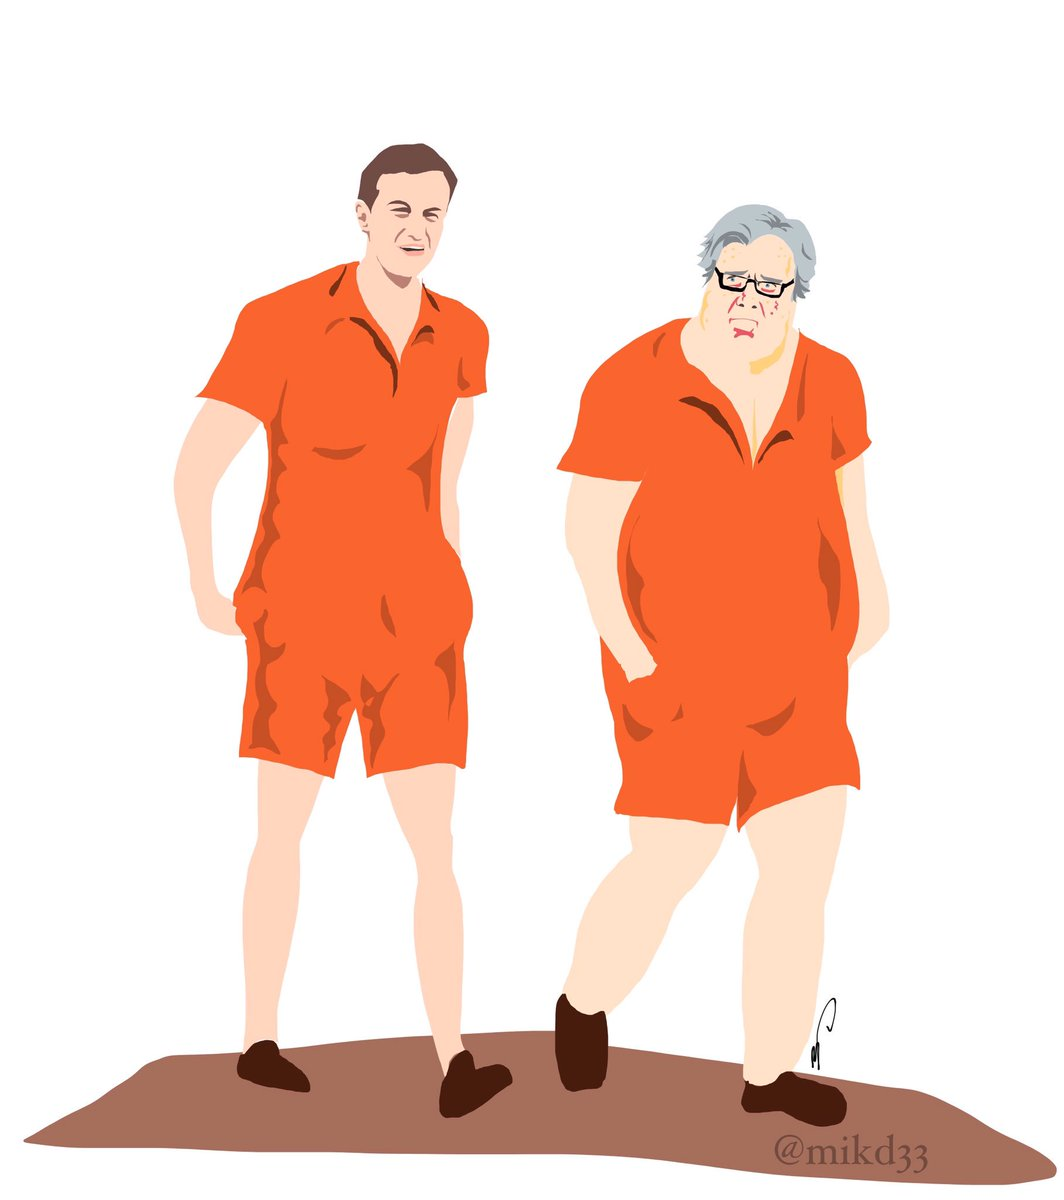 Jared Kushner & Steve Bannon in their new rompers down by the prison yard